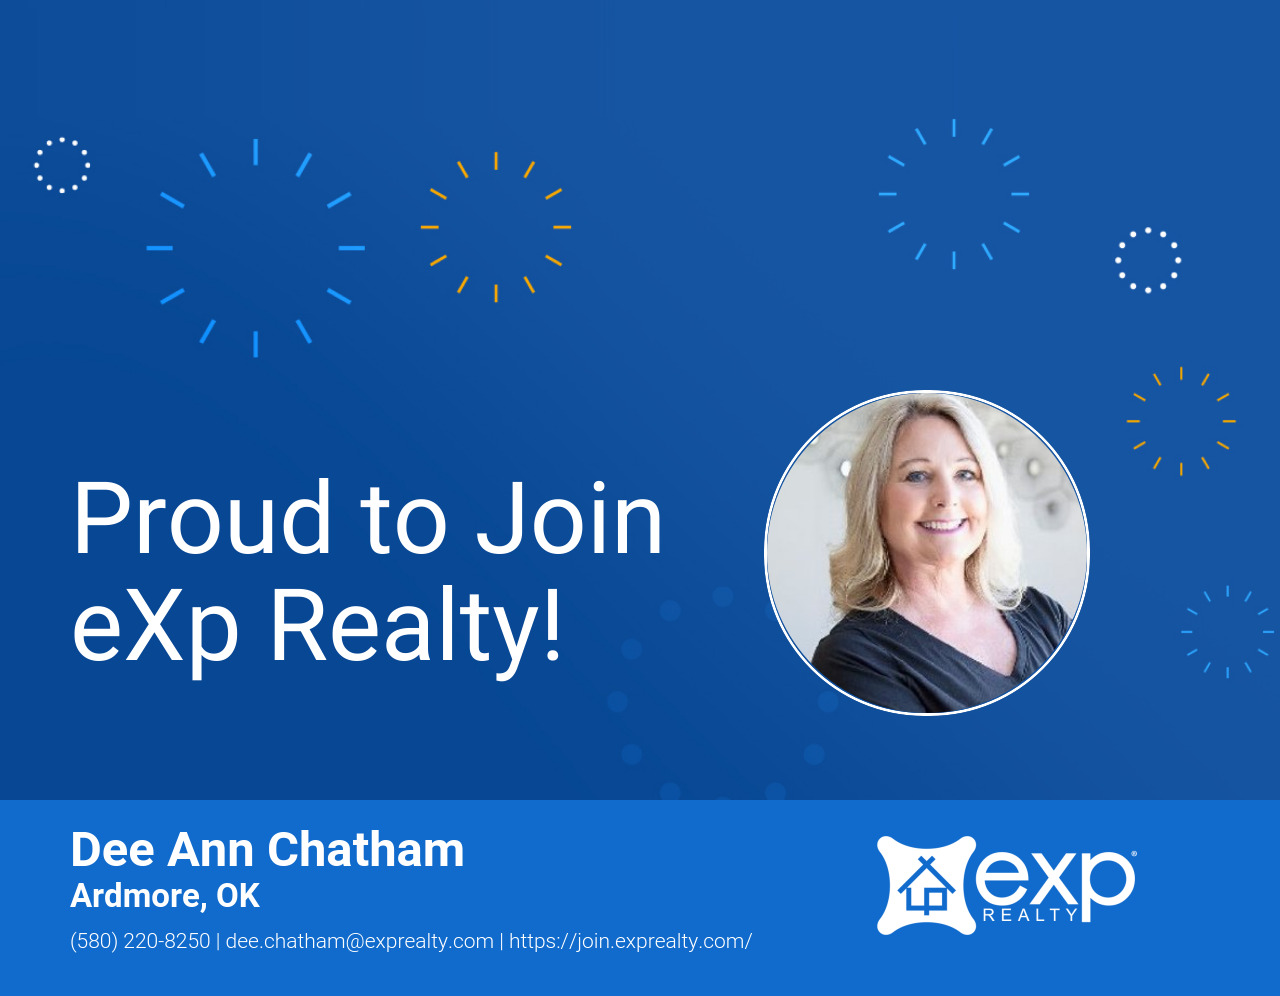 Welcome to eXp Realty Dee Ann Chatham!